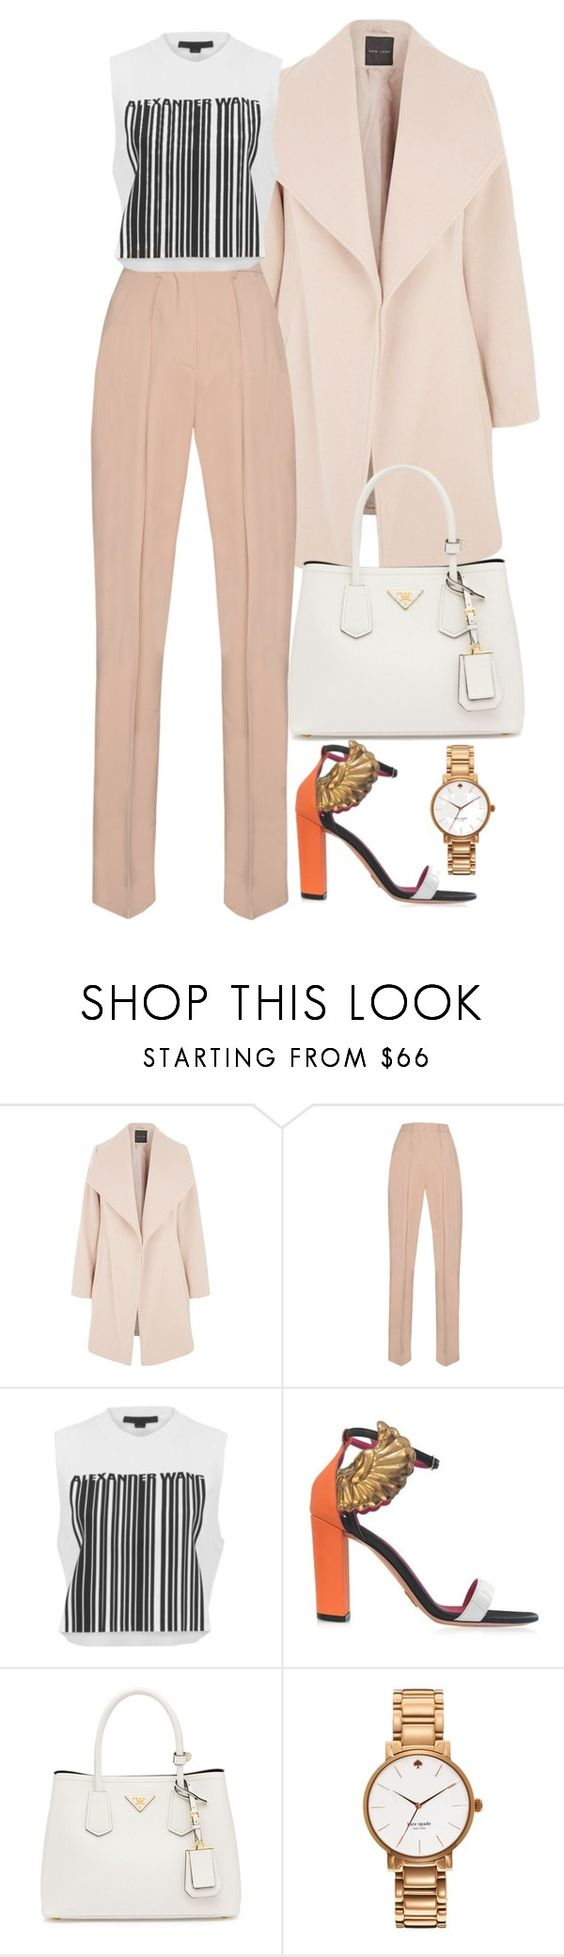 """Love It or Hate It"" by emma632roxx ❤ liked on Polyvore featuring MSGM, Alexander Wang, Oscar Tiye, Prada and Kate Spade"